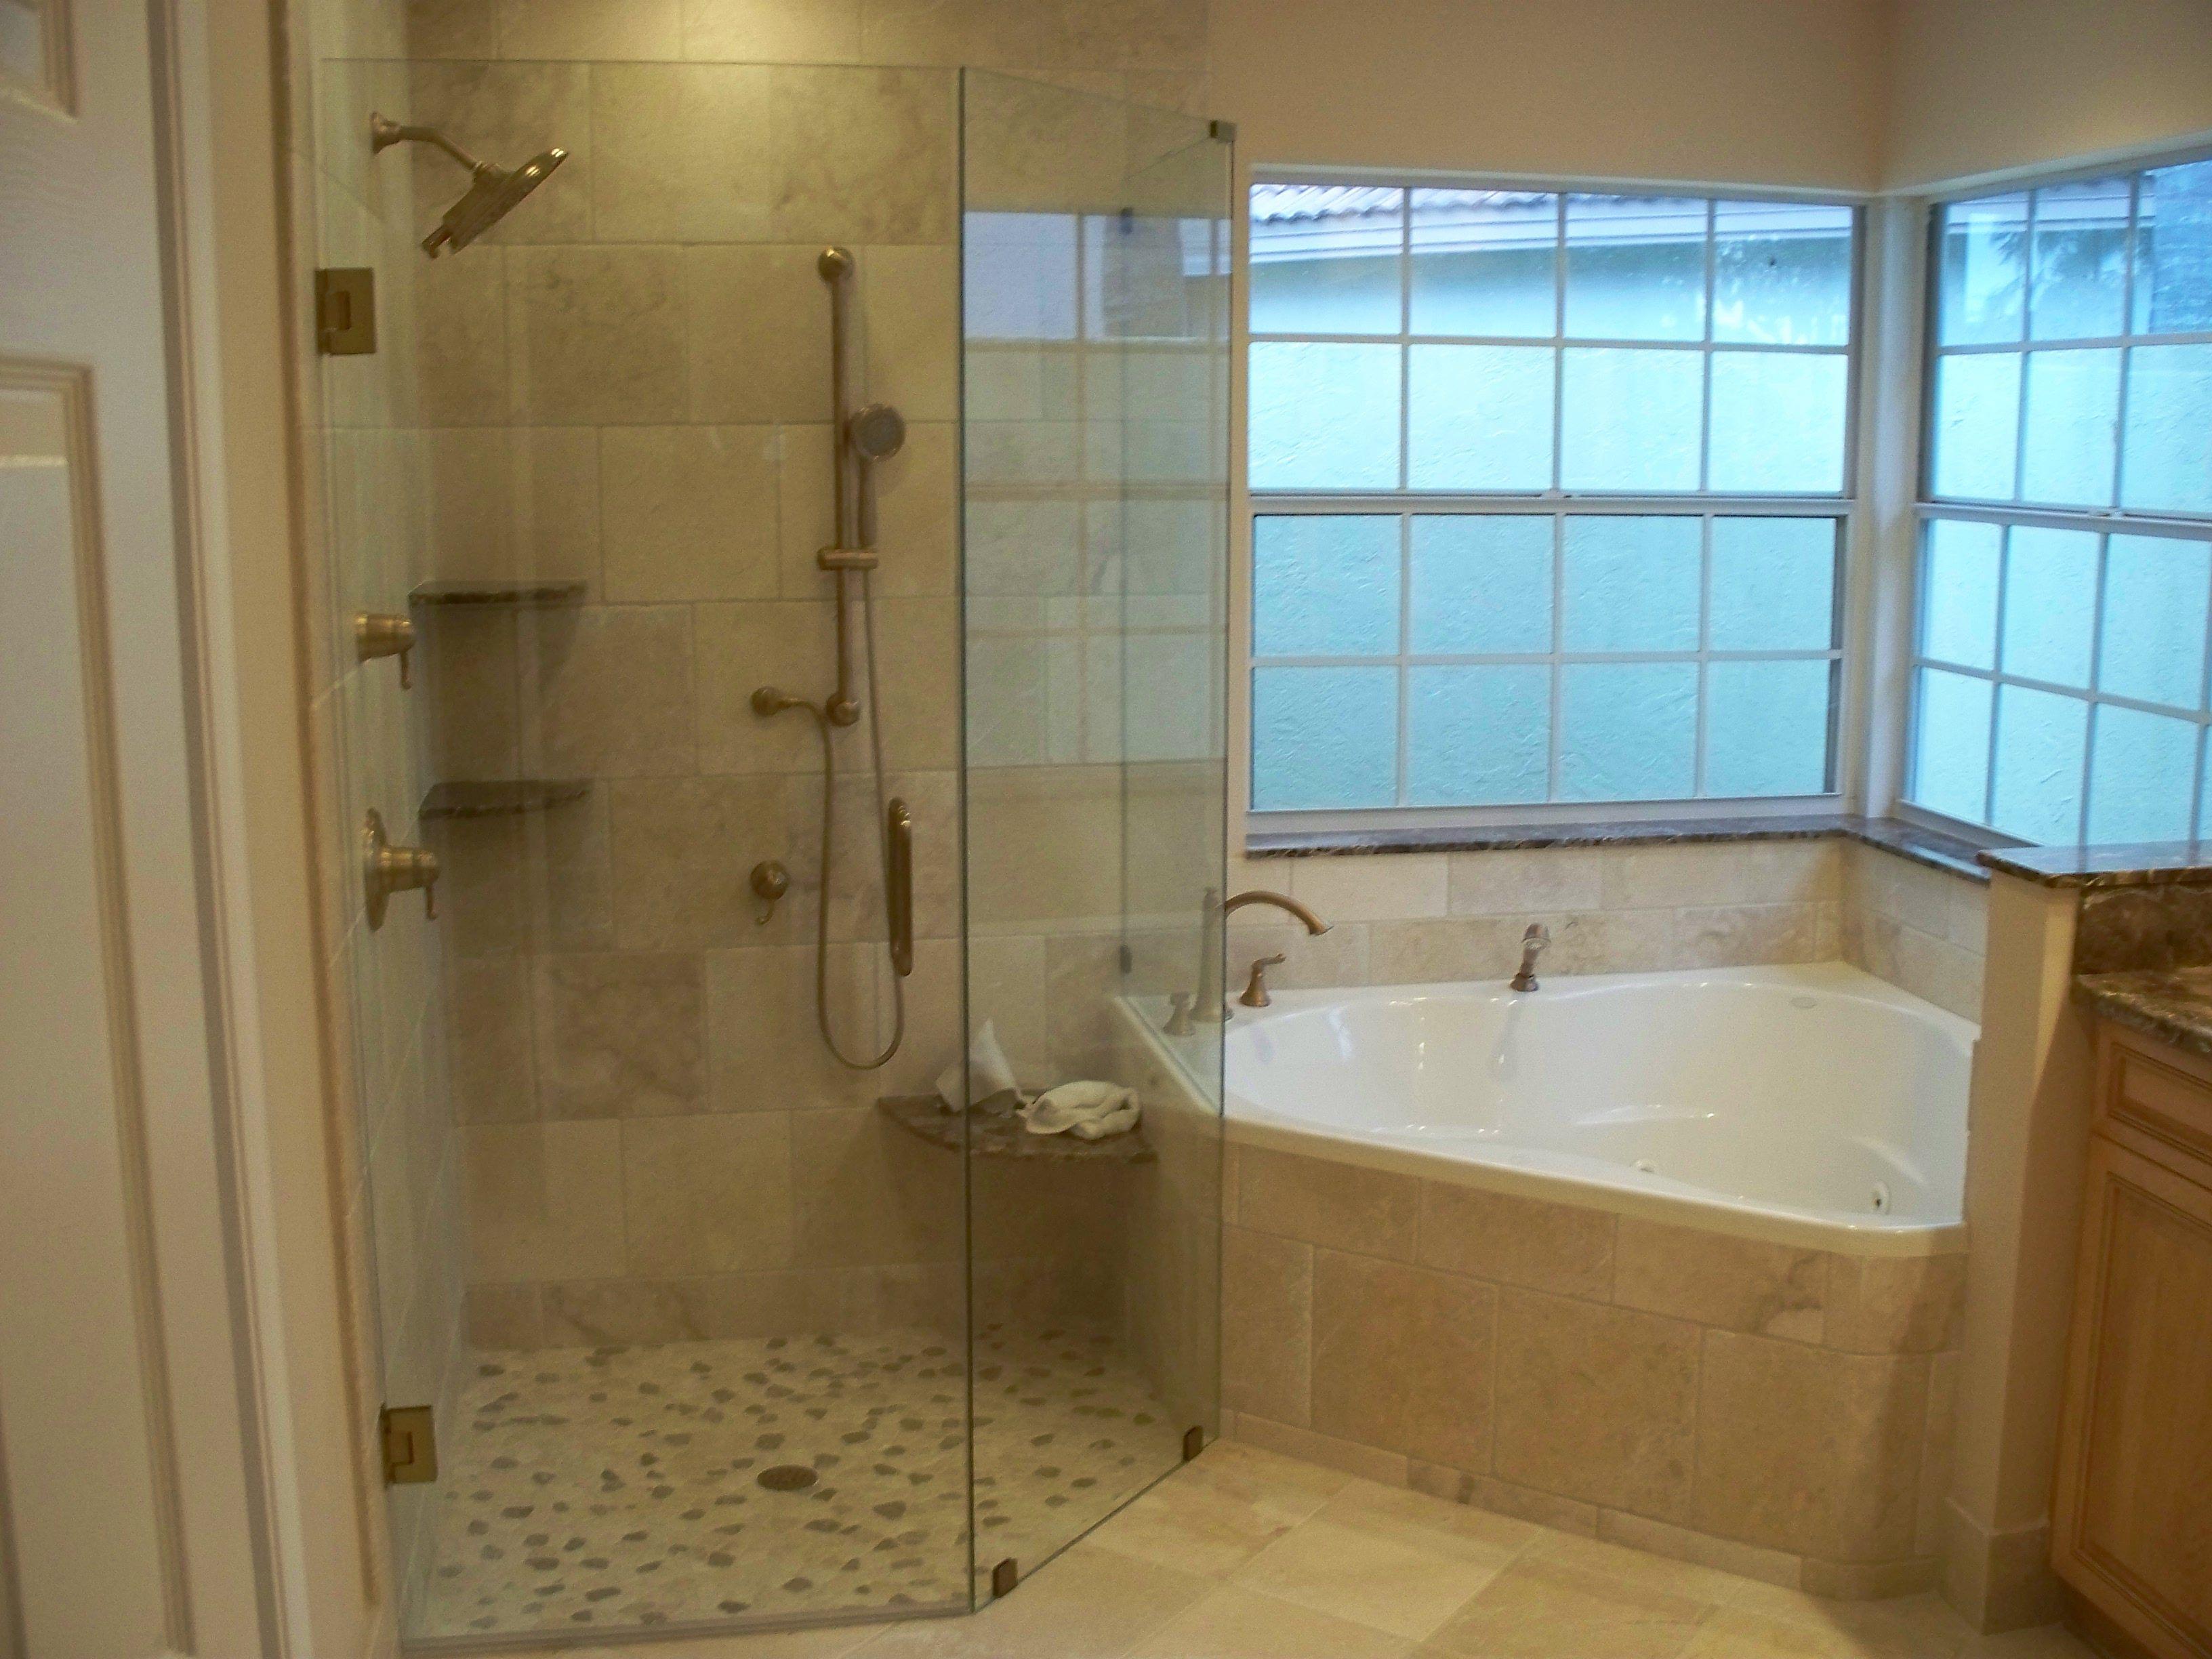 Bathroom Remodel Corner Shower corner tub w/ larger walk in shower. do not like the wall next to